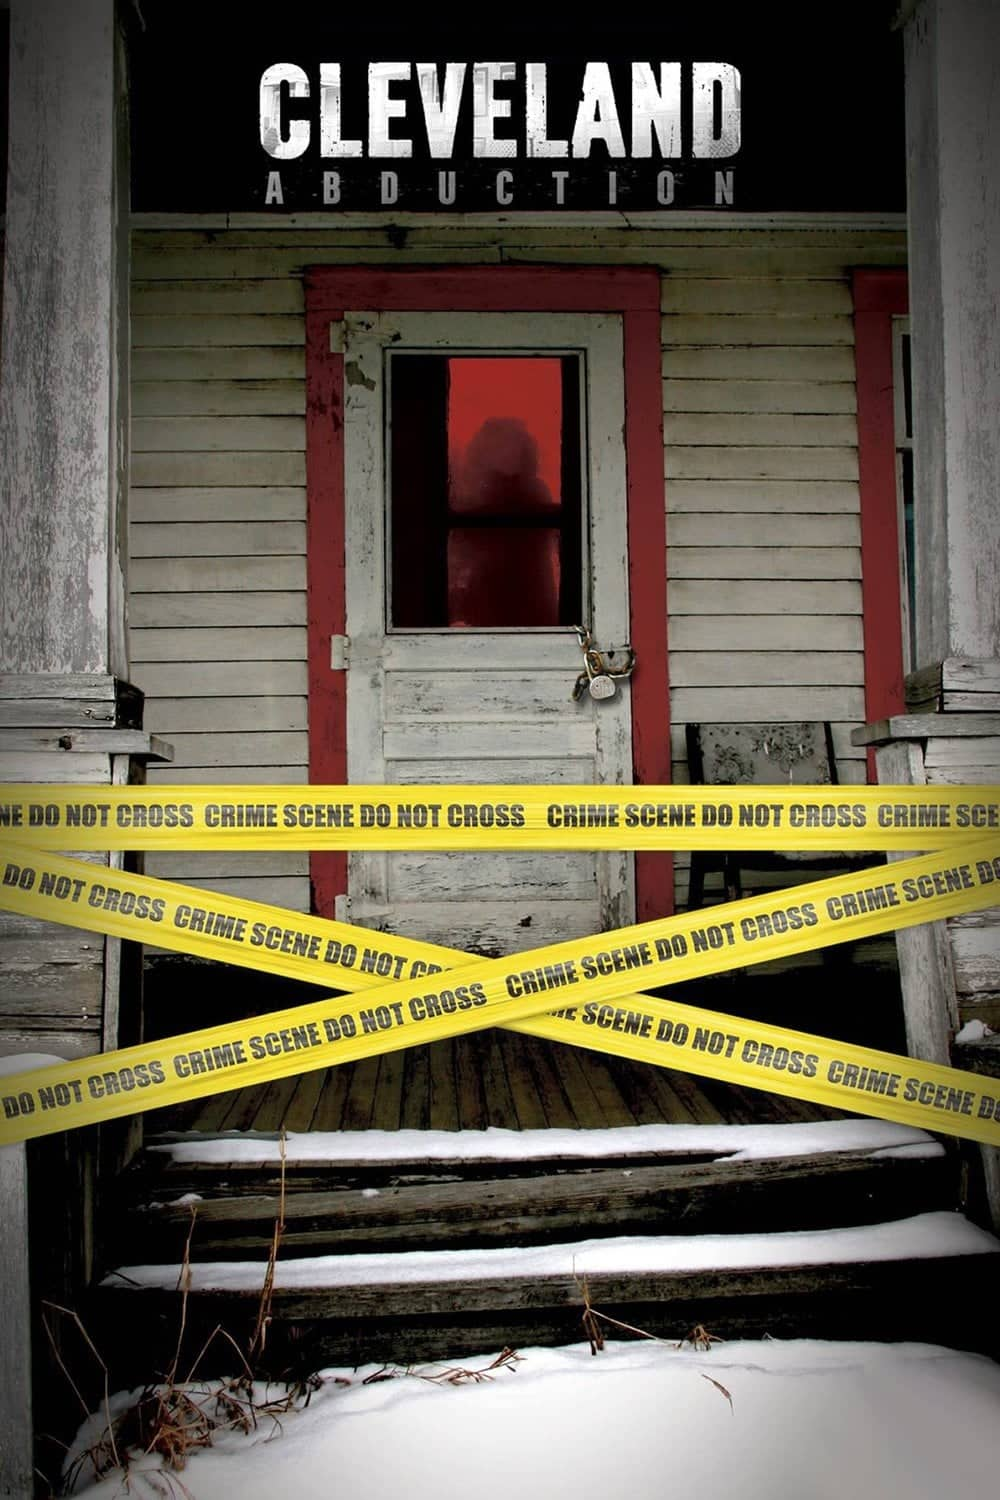 Cleveland Abduction, 2015